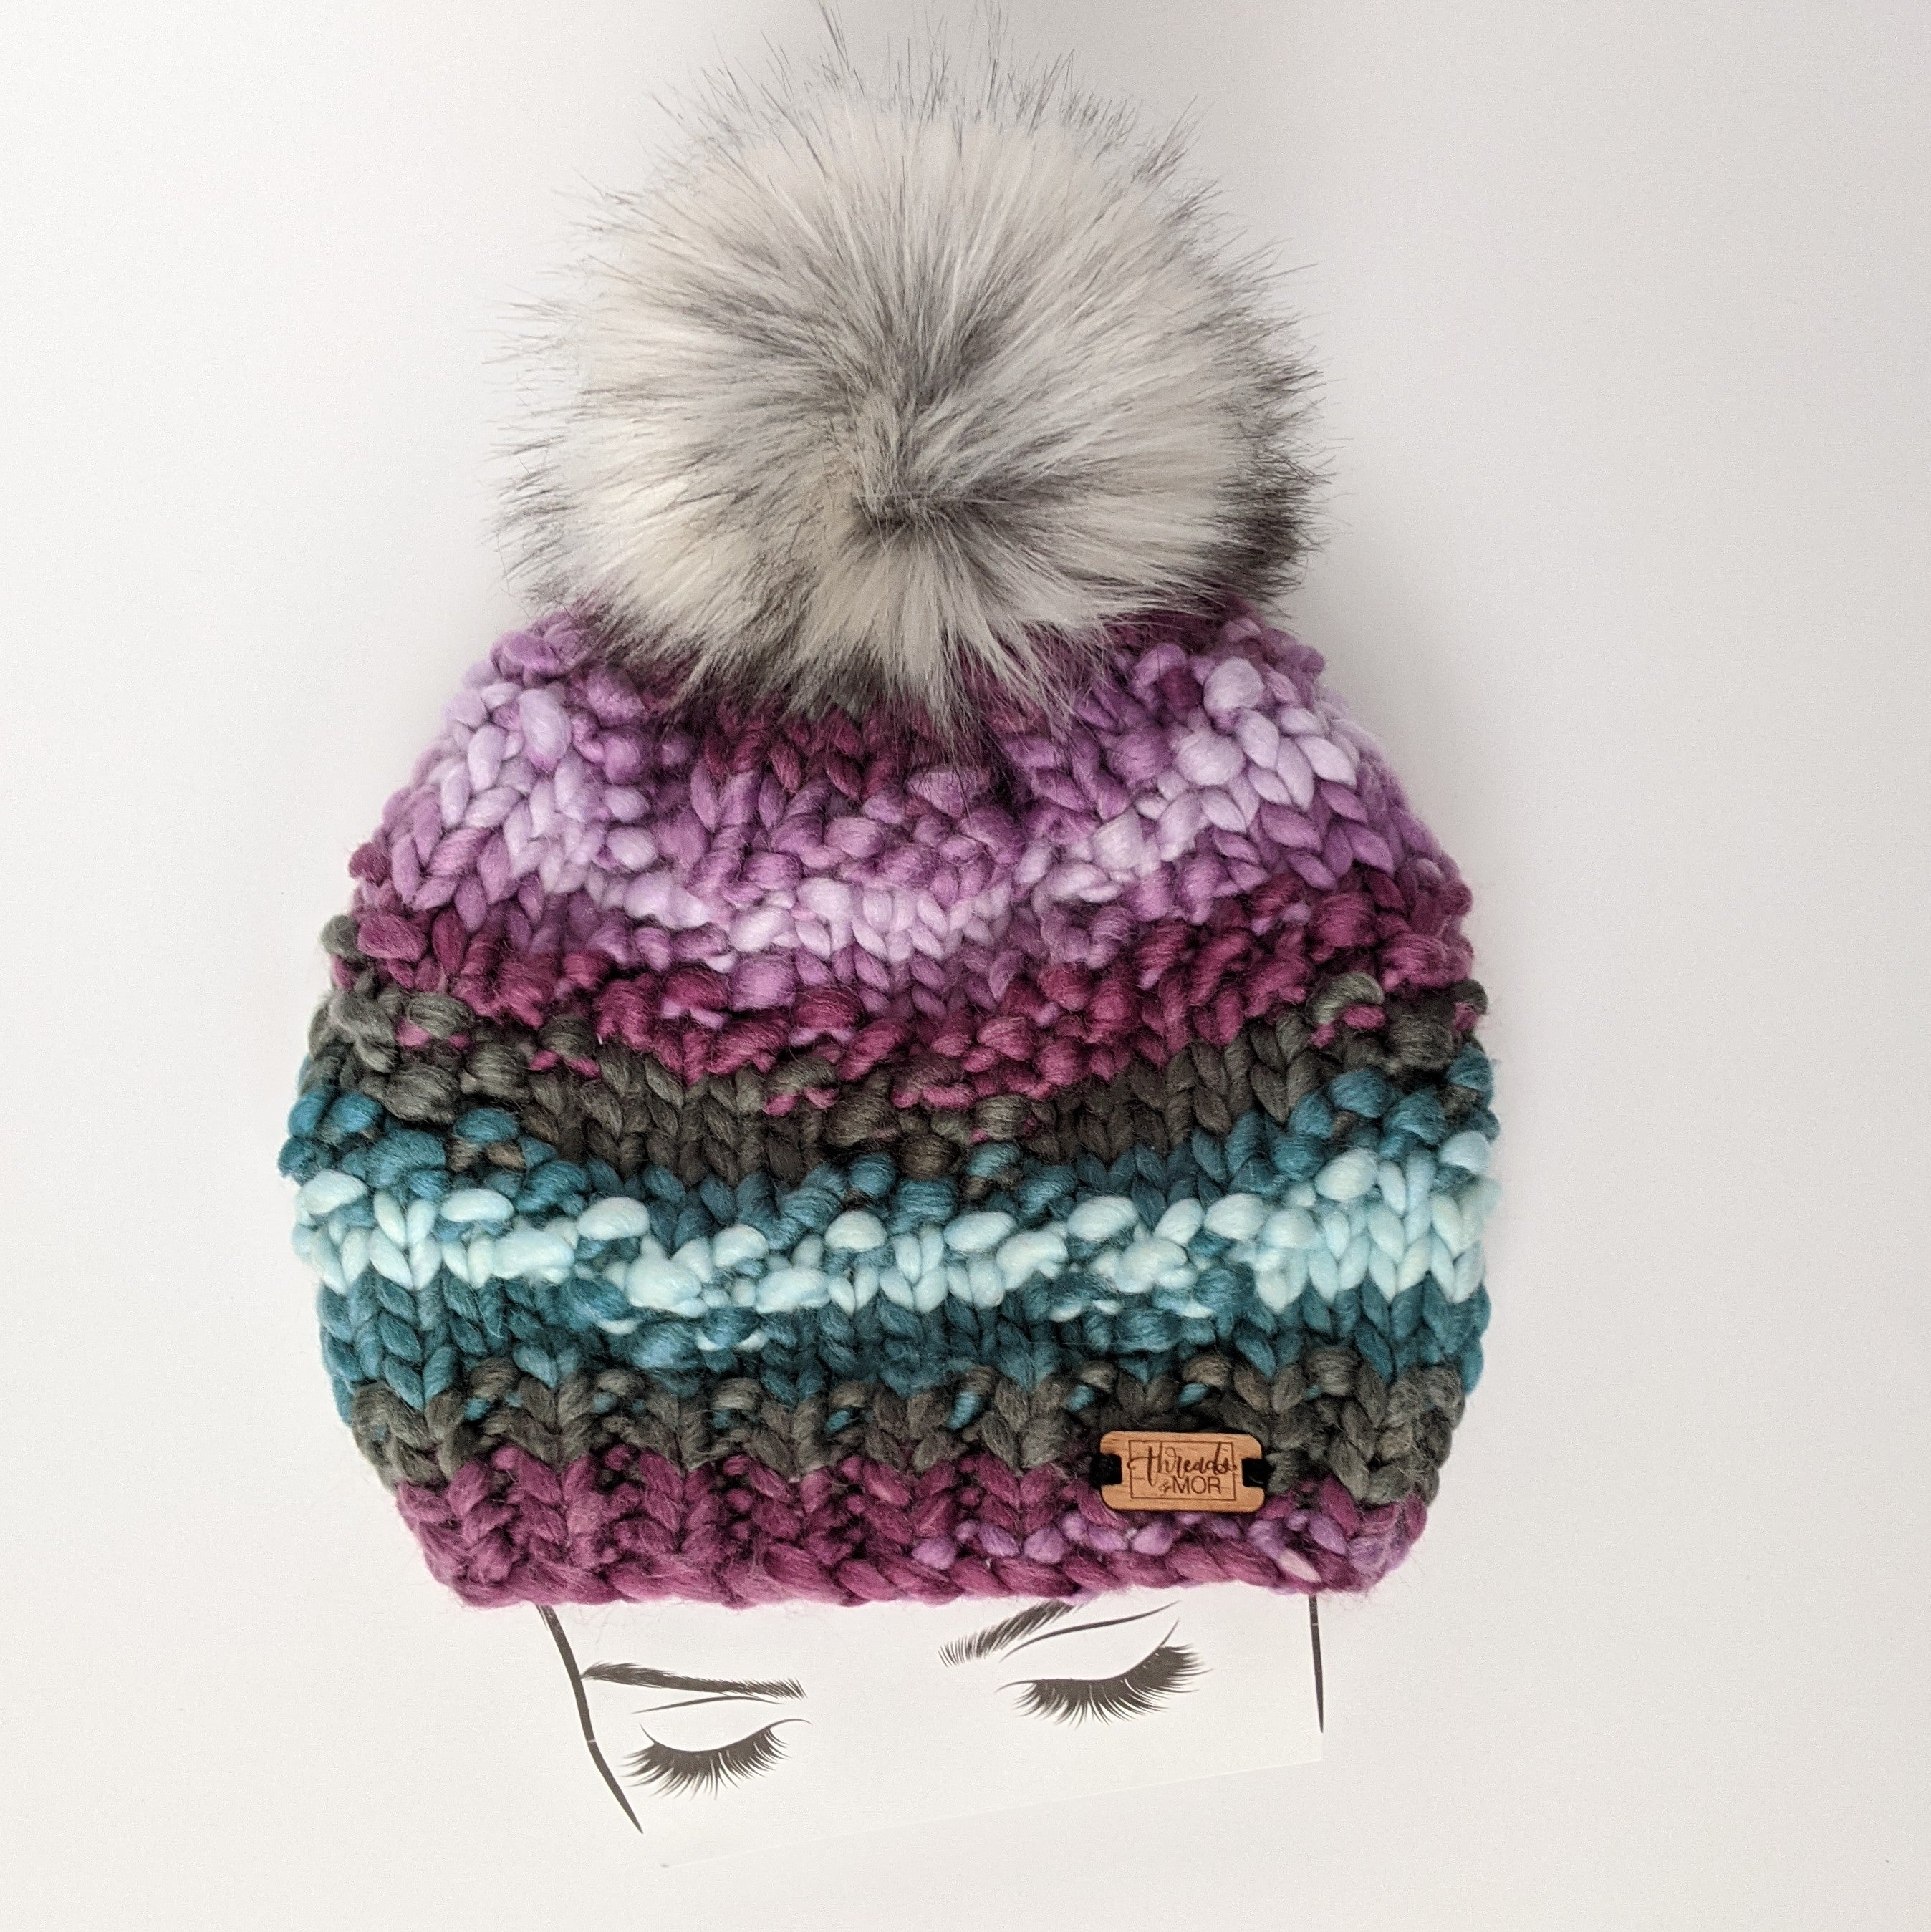 Etta Dreamsicle Stripped Knit Beanie Hat with extra large faux fur pom pom